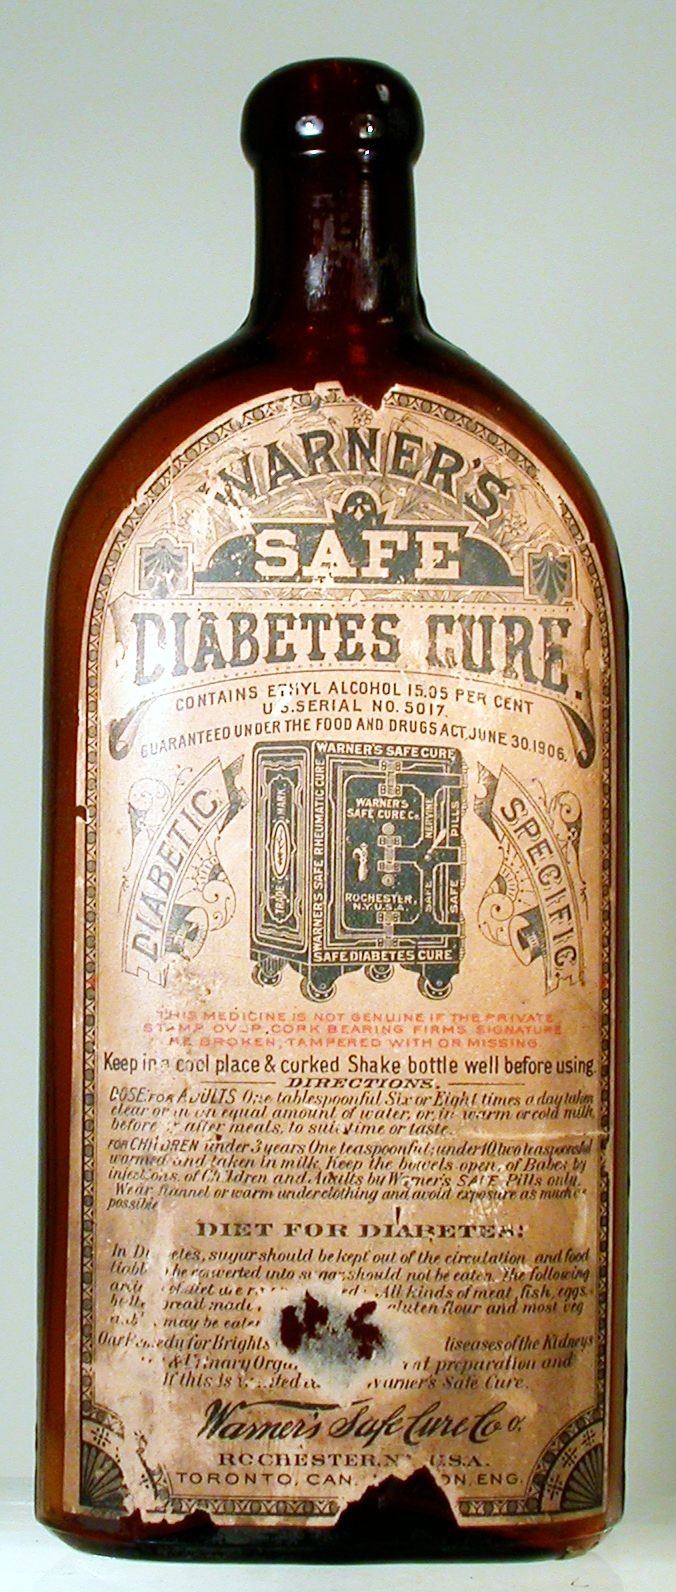 Absolute ethyl alcohol bottle vintage chemical bottle science lab - Warner S Safe Diabetes Cure With Ethyl Alcohol Who Needs Insulin Find This Pin And More On Bottles Antique